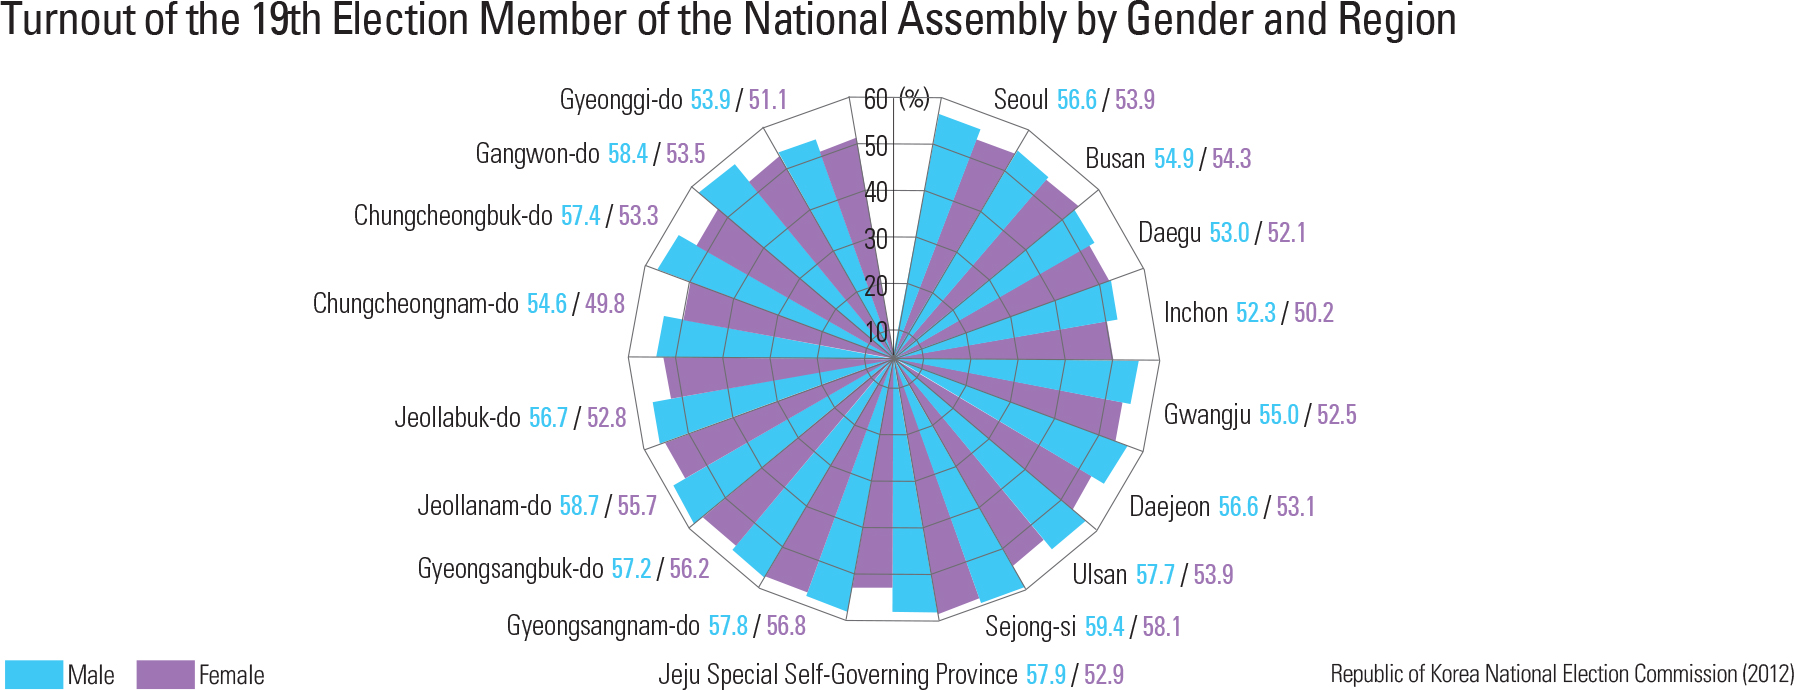 Turnout of the 19th Election Member of the National Assembly by Gender and Region